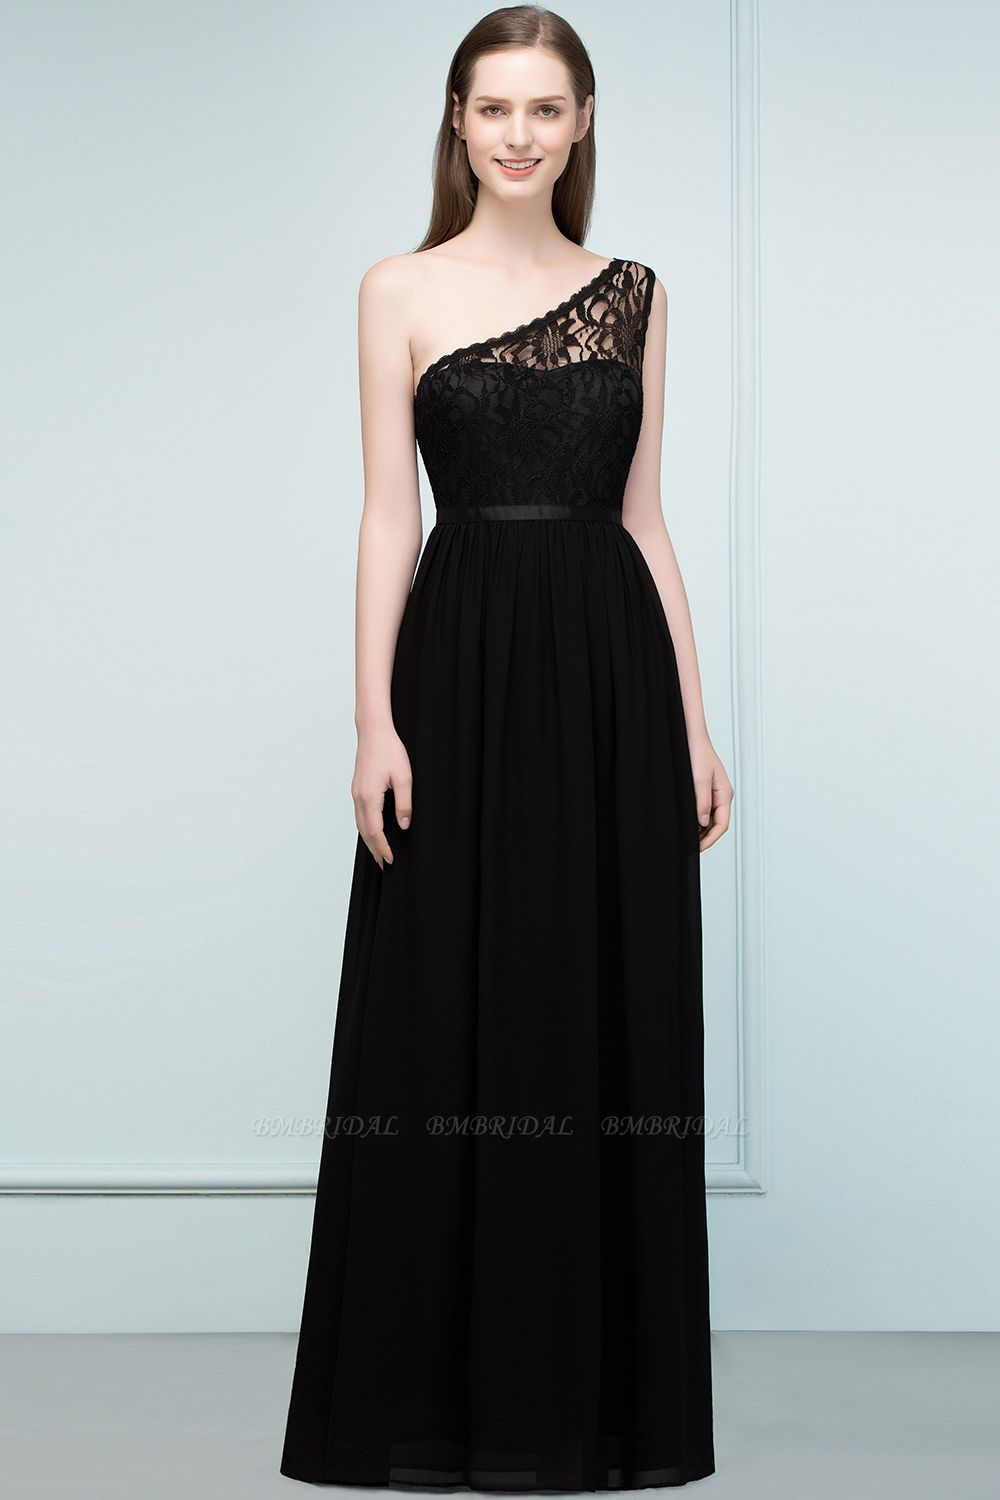 BMbridal Stylish Black Chiffon One-Shoulder Lace Affordable Bridesmaid Dresses